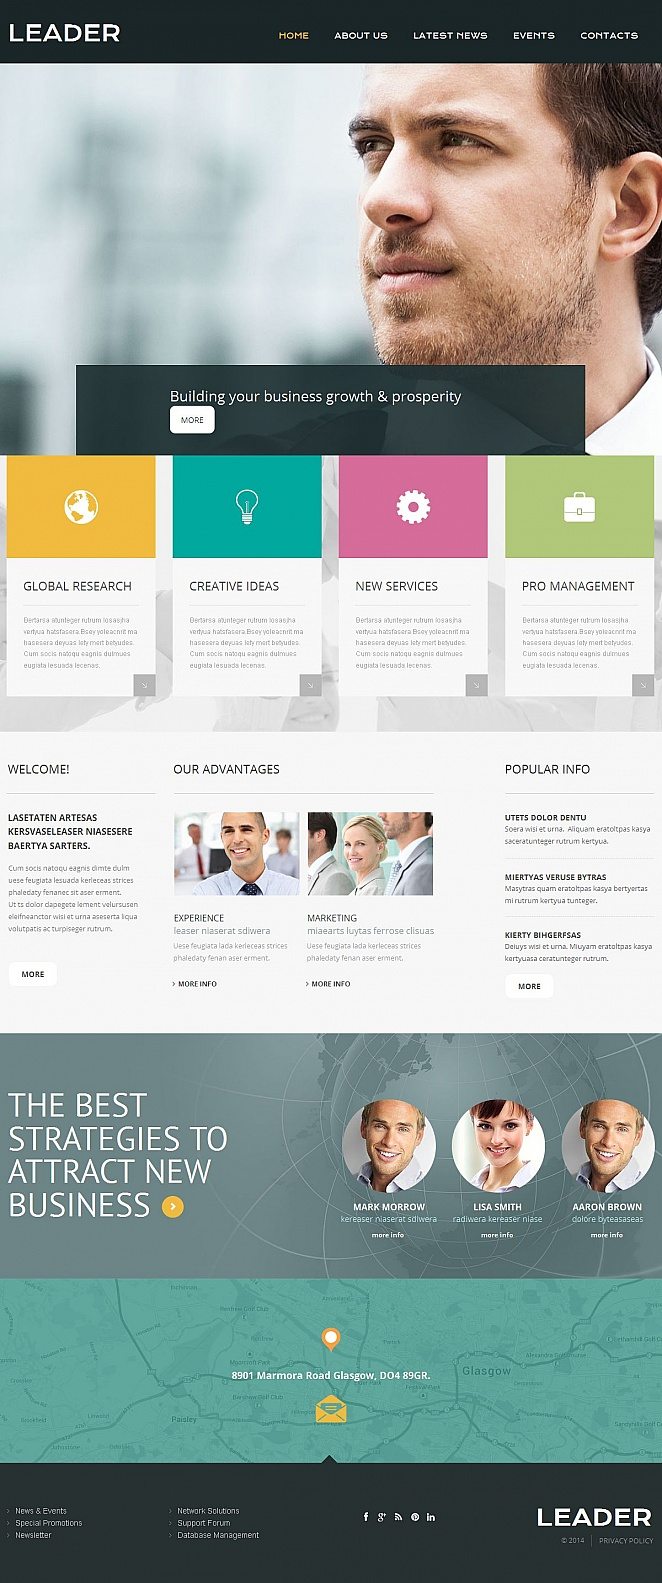 Visual-Rich Business Website Template - image